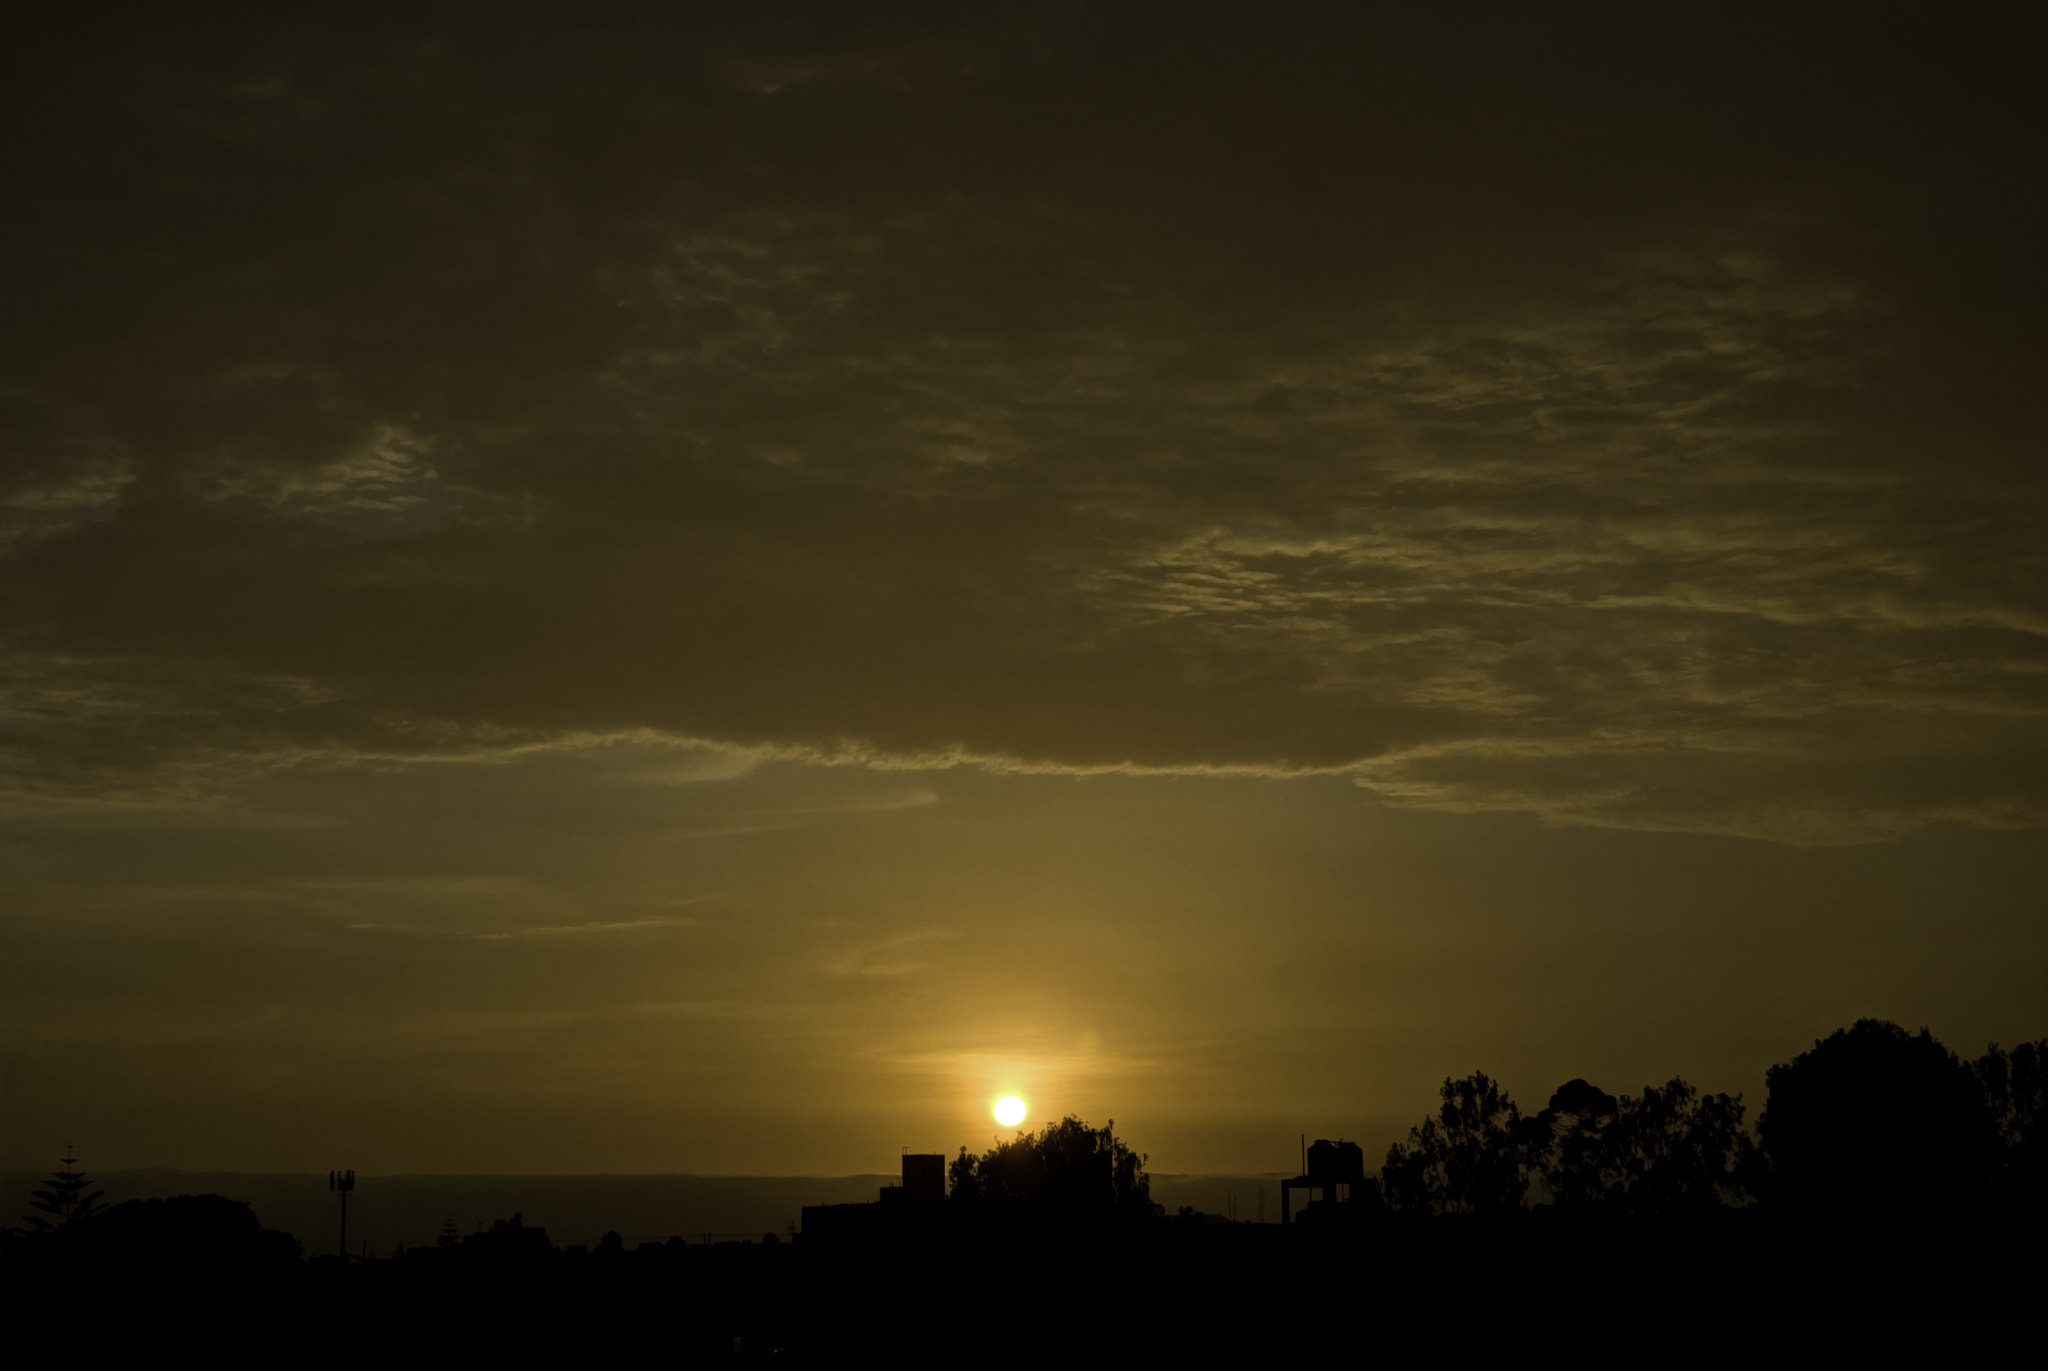 Photograph Sunset by Enzo Cesti on 500px